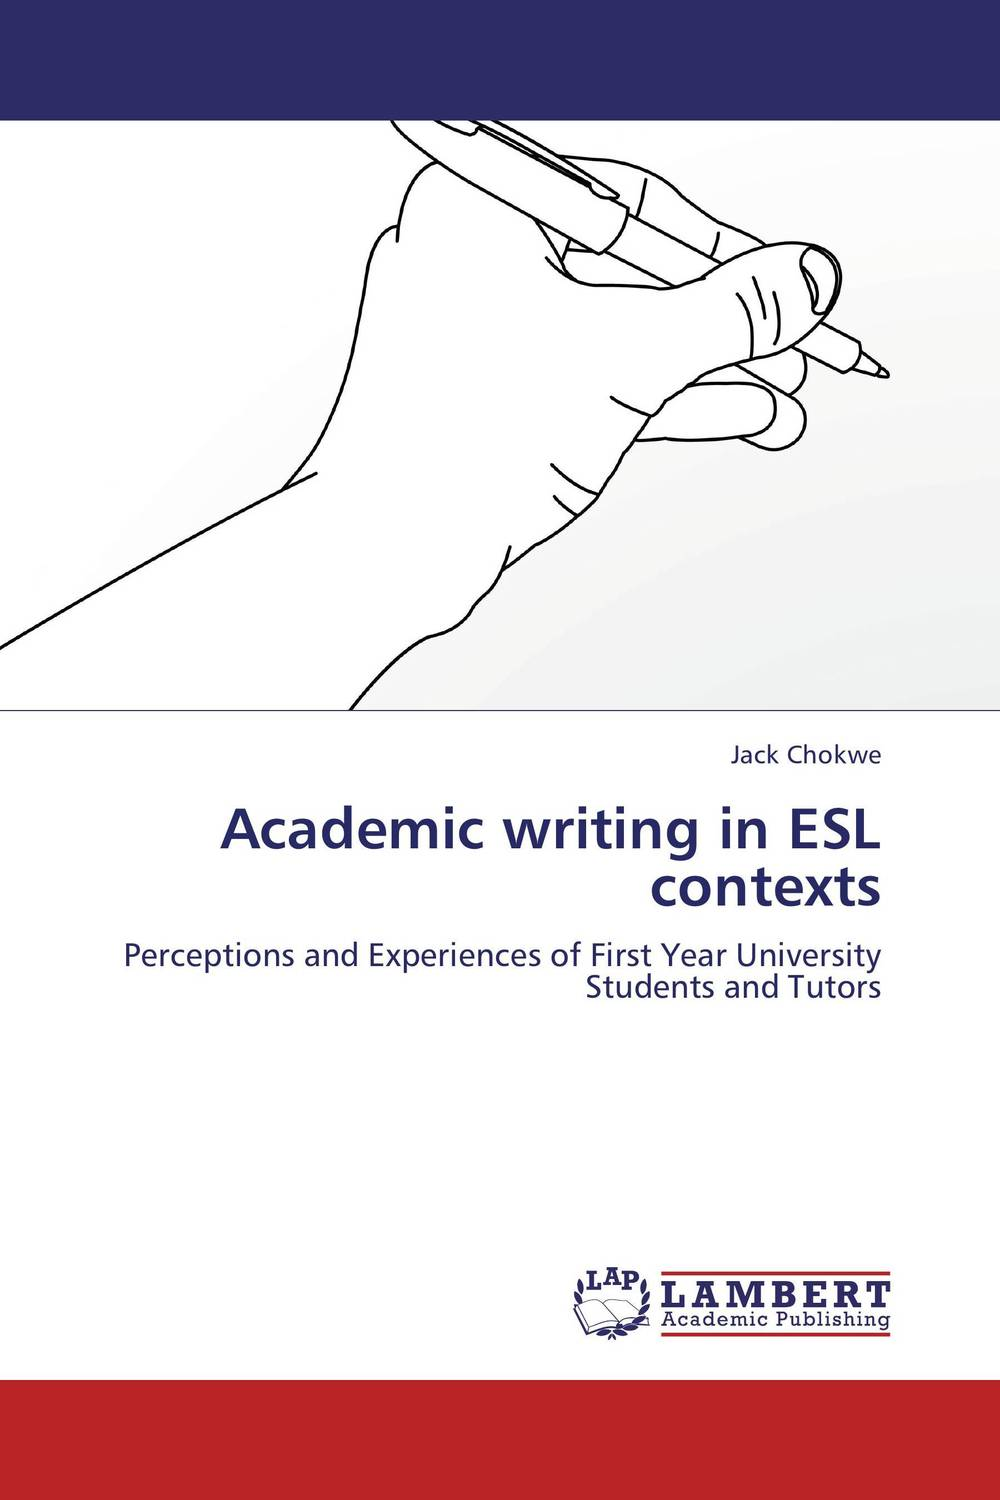 Academic writing in ESL contexts